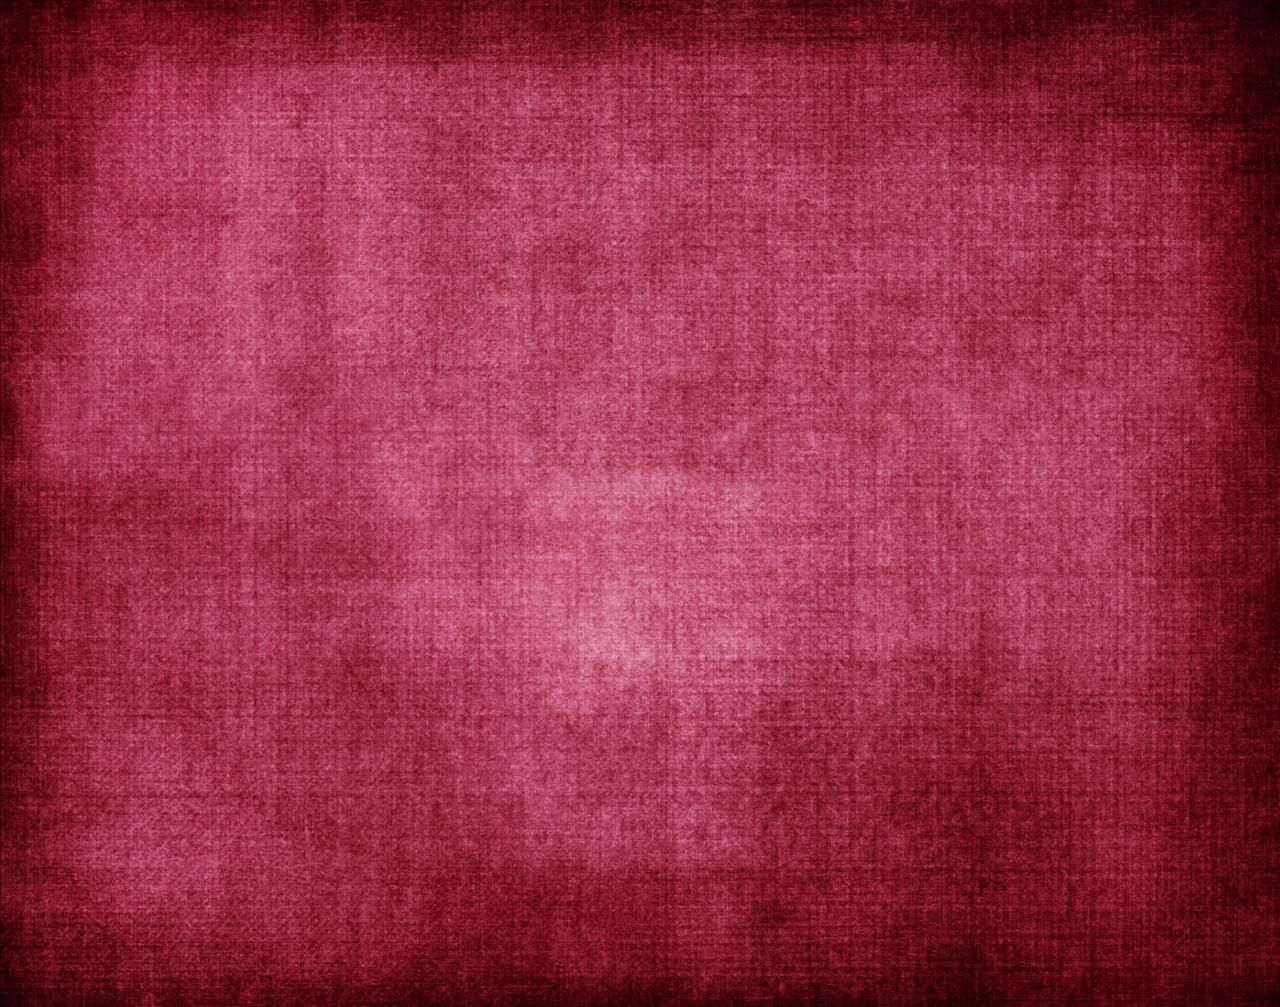 Pin On Abstract And Textures The best selection of royalty free burgundy background vector art, graphics and stock illustrations. pin on abstract and textures